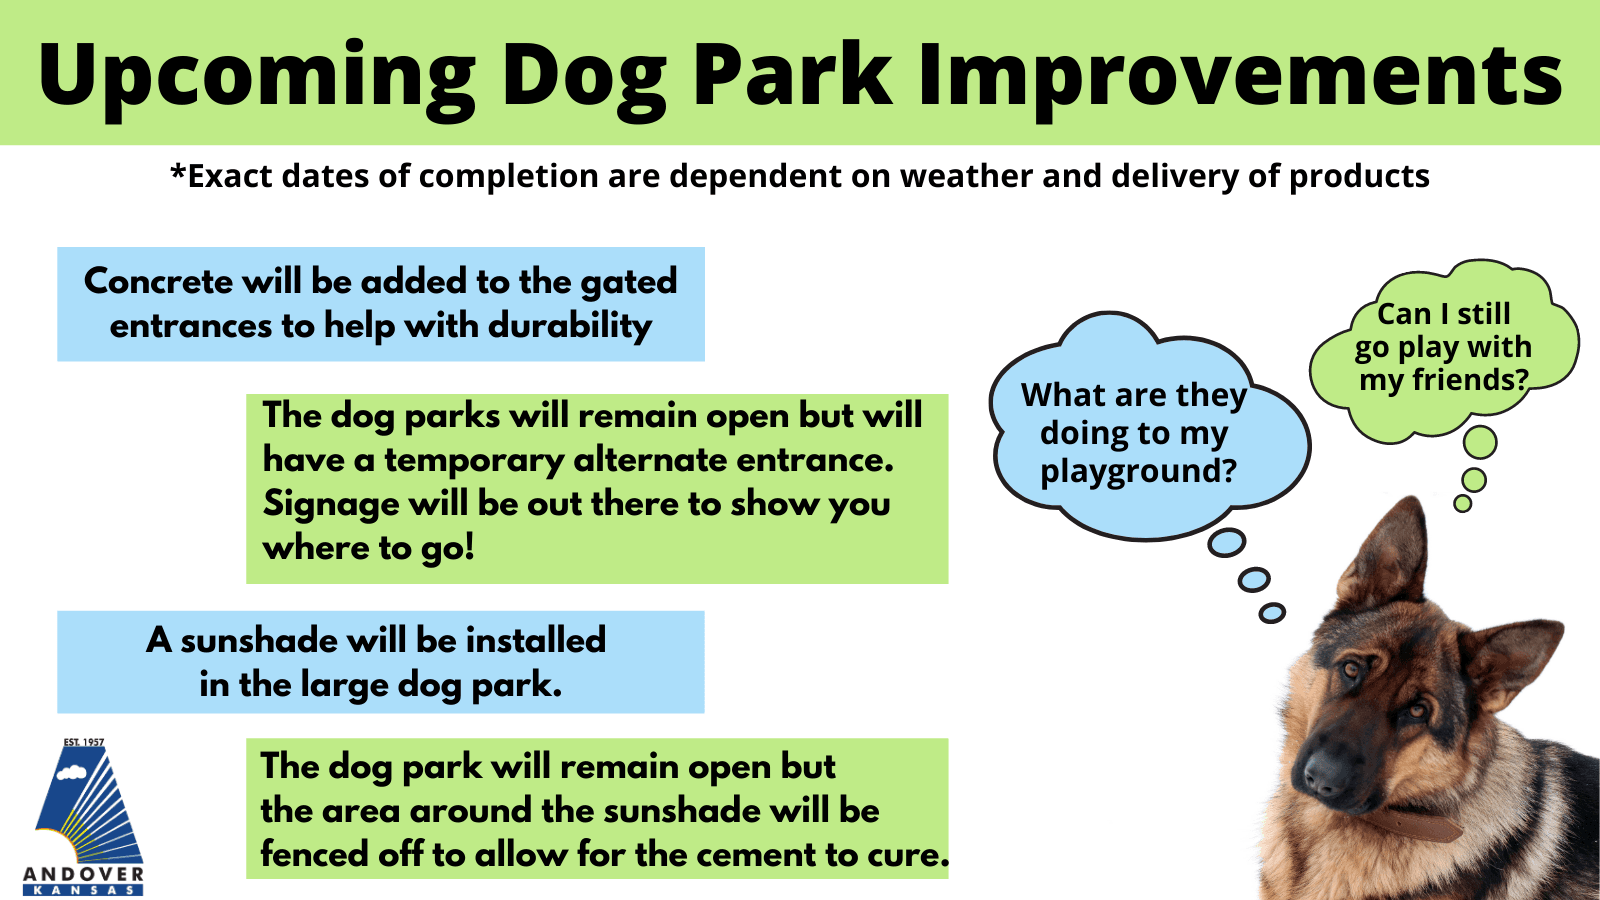 Dog Park Improvements. Picture of dog and a list of the improvements being made.